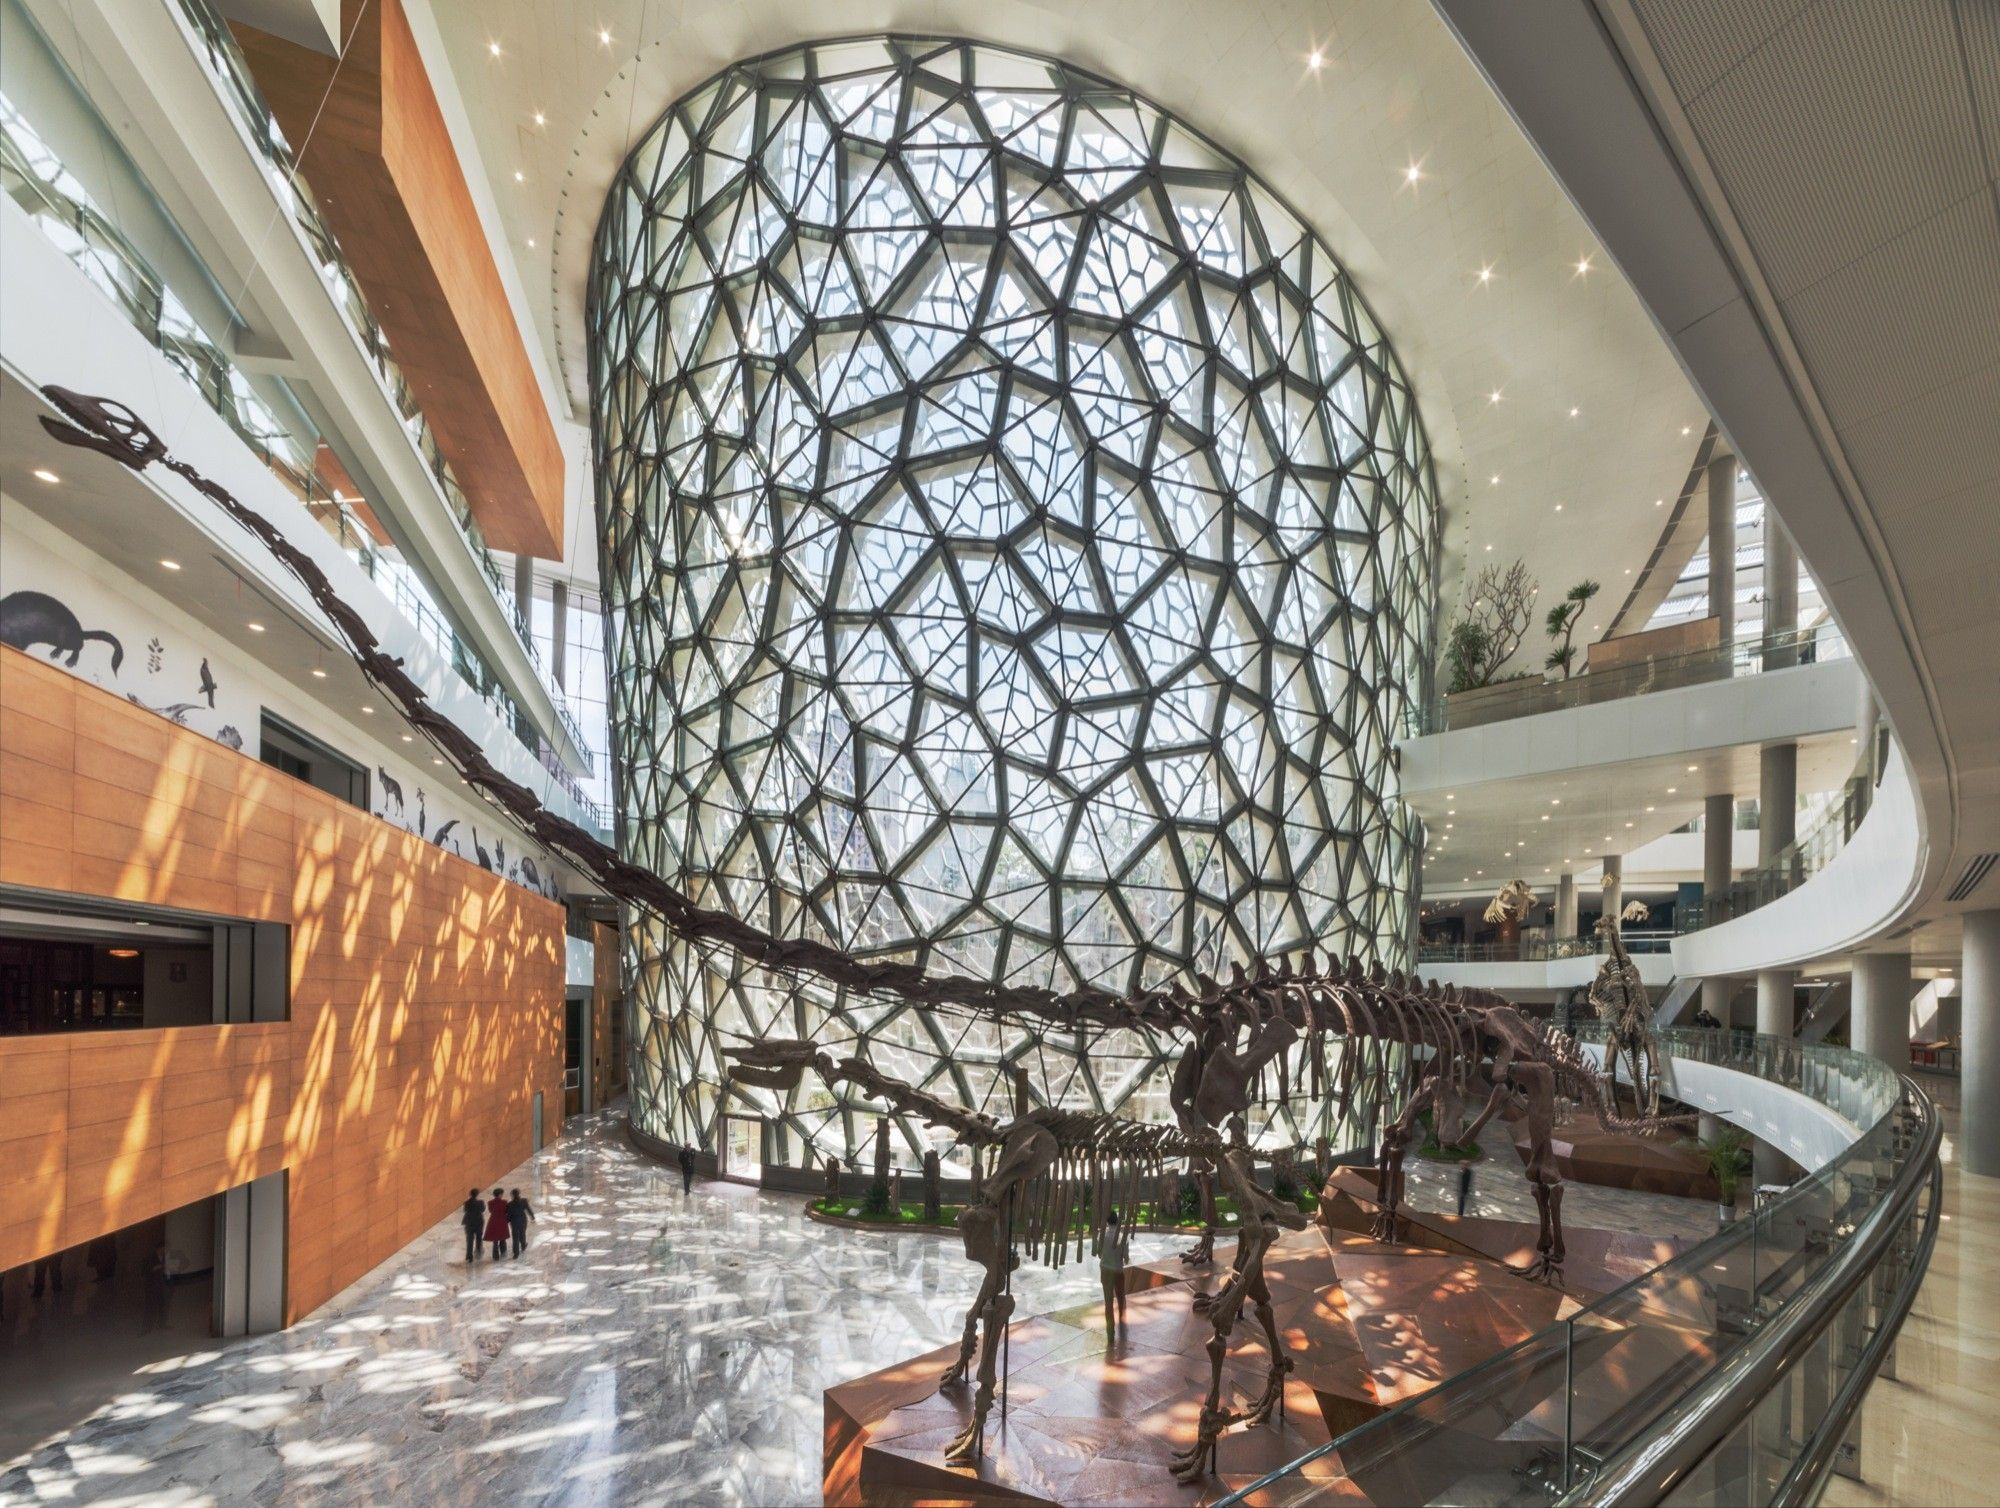 Shanghai Natural History Museum One Of The Largest Museums Sciences In China Established Moved To A Spectacular New Home Last Year